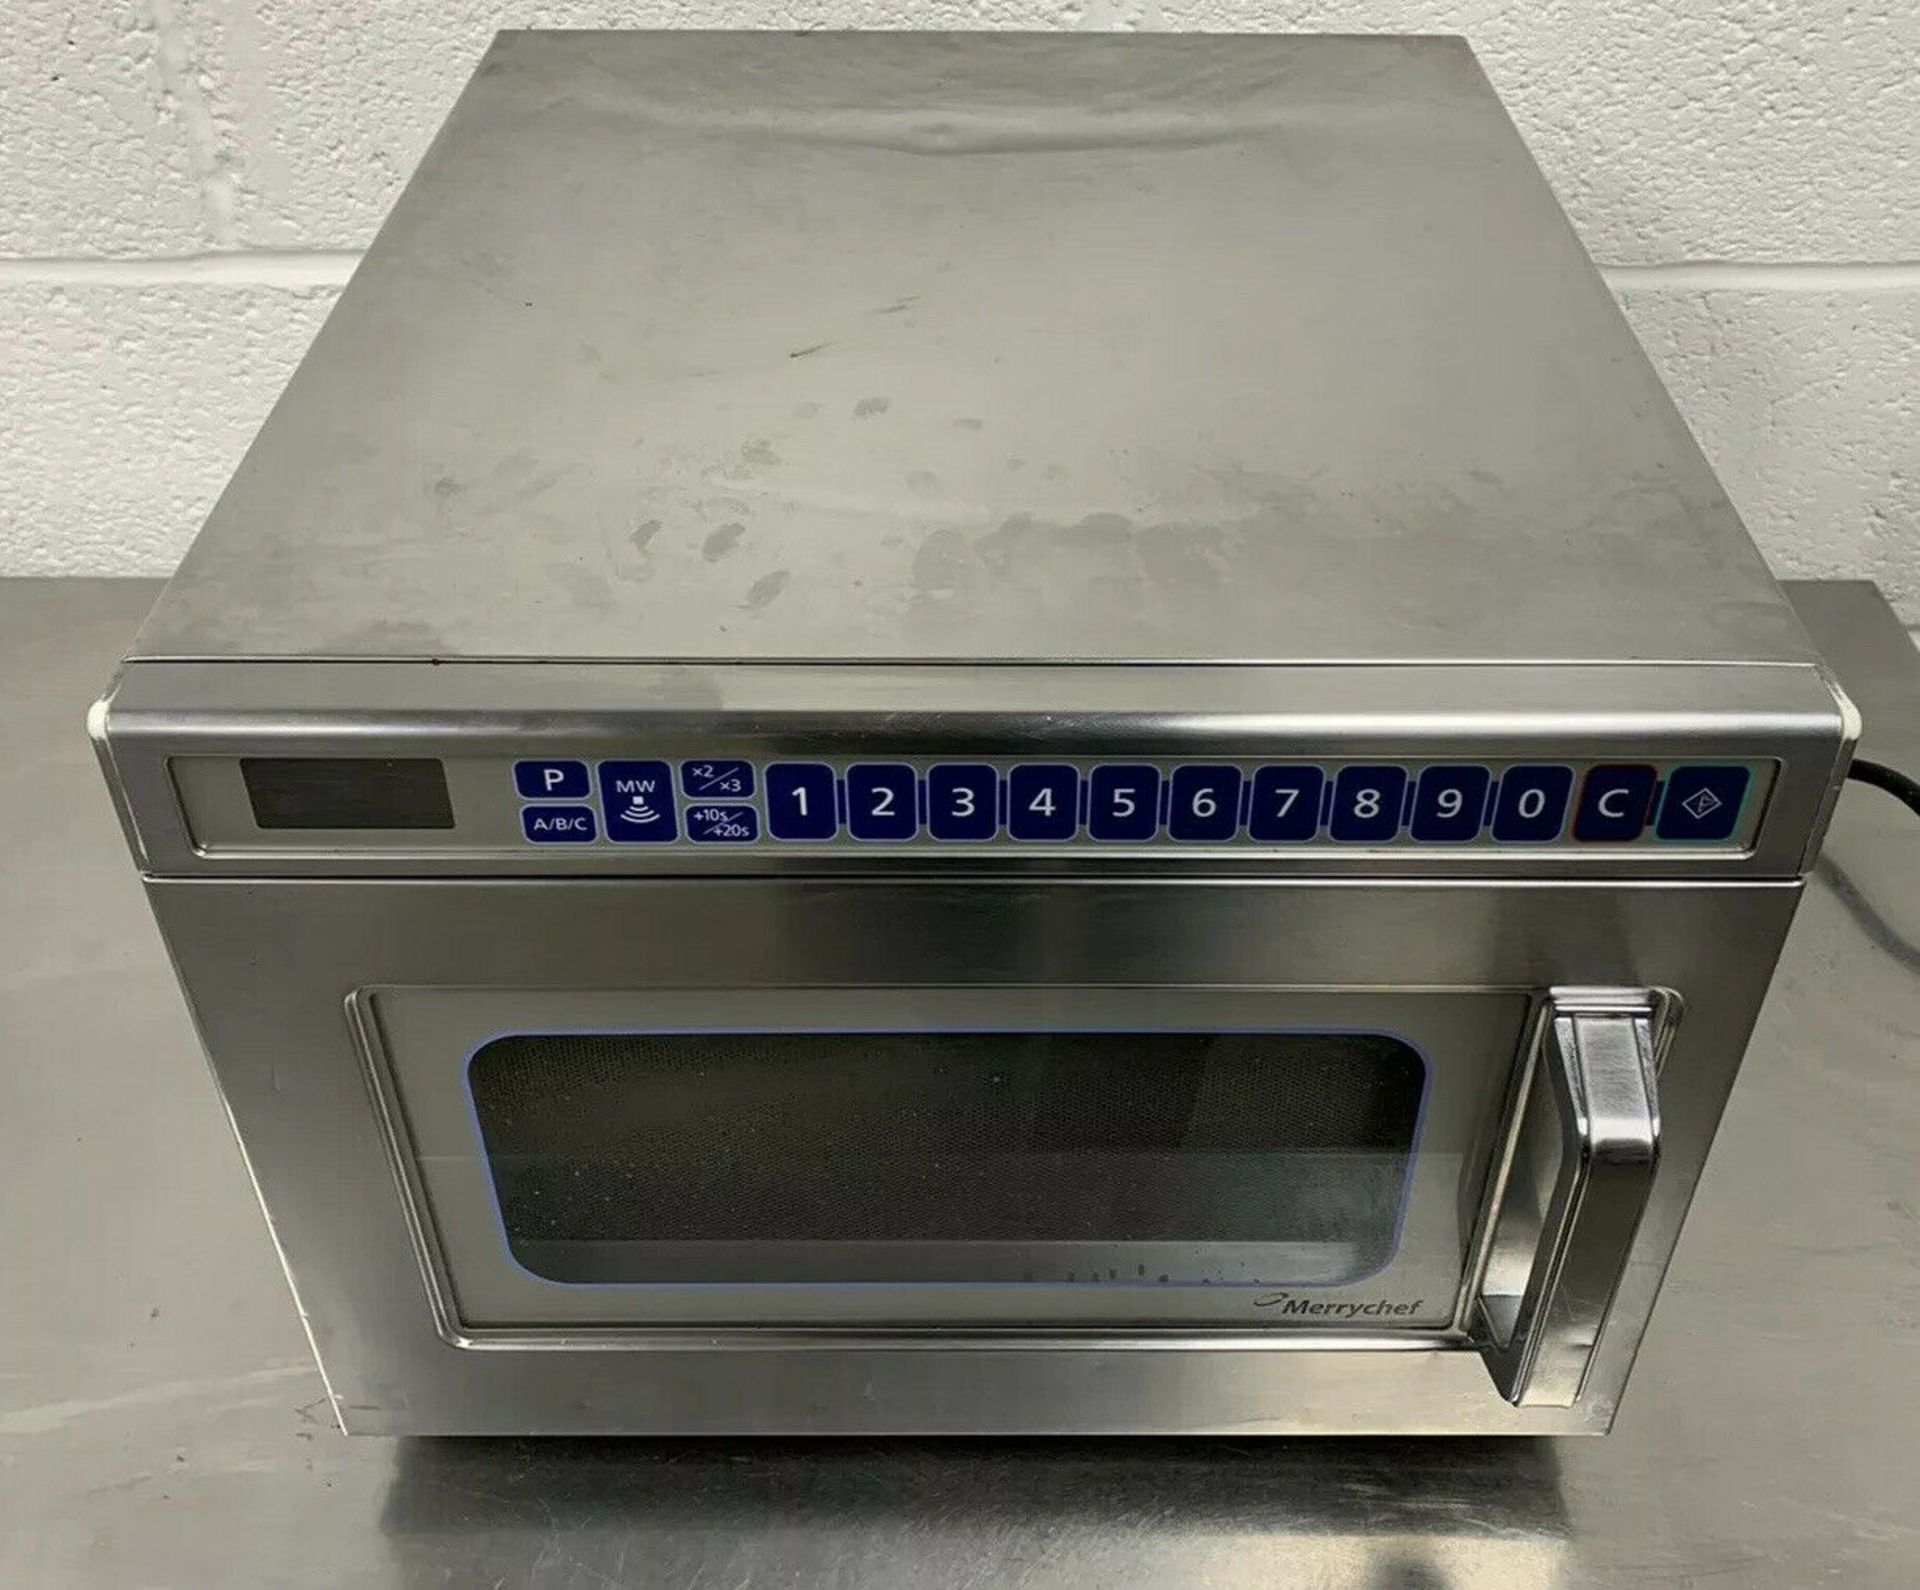 Lot 26 - Merrychef MD1800 Microwave Oven 2017